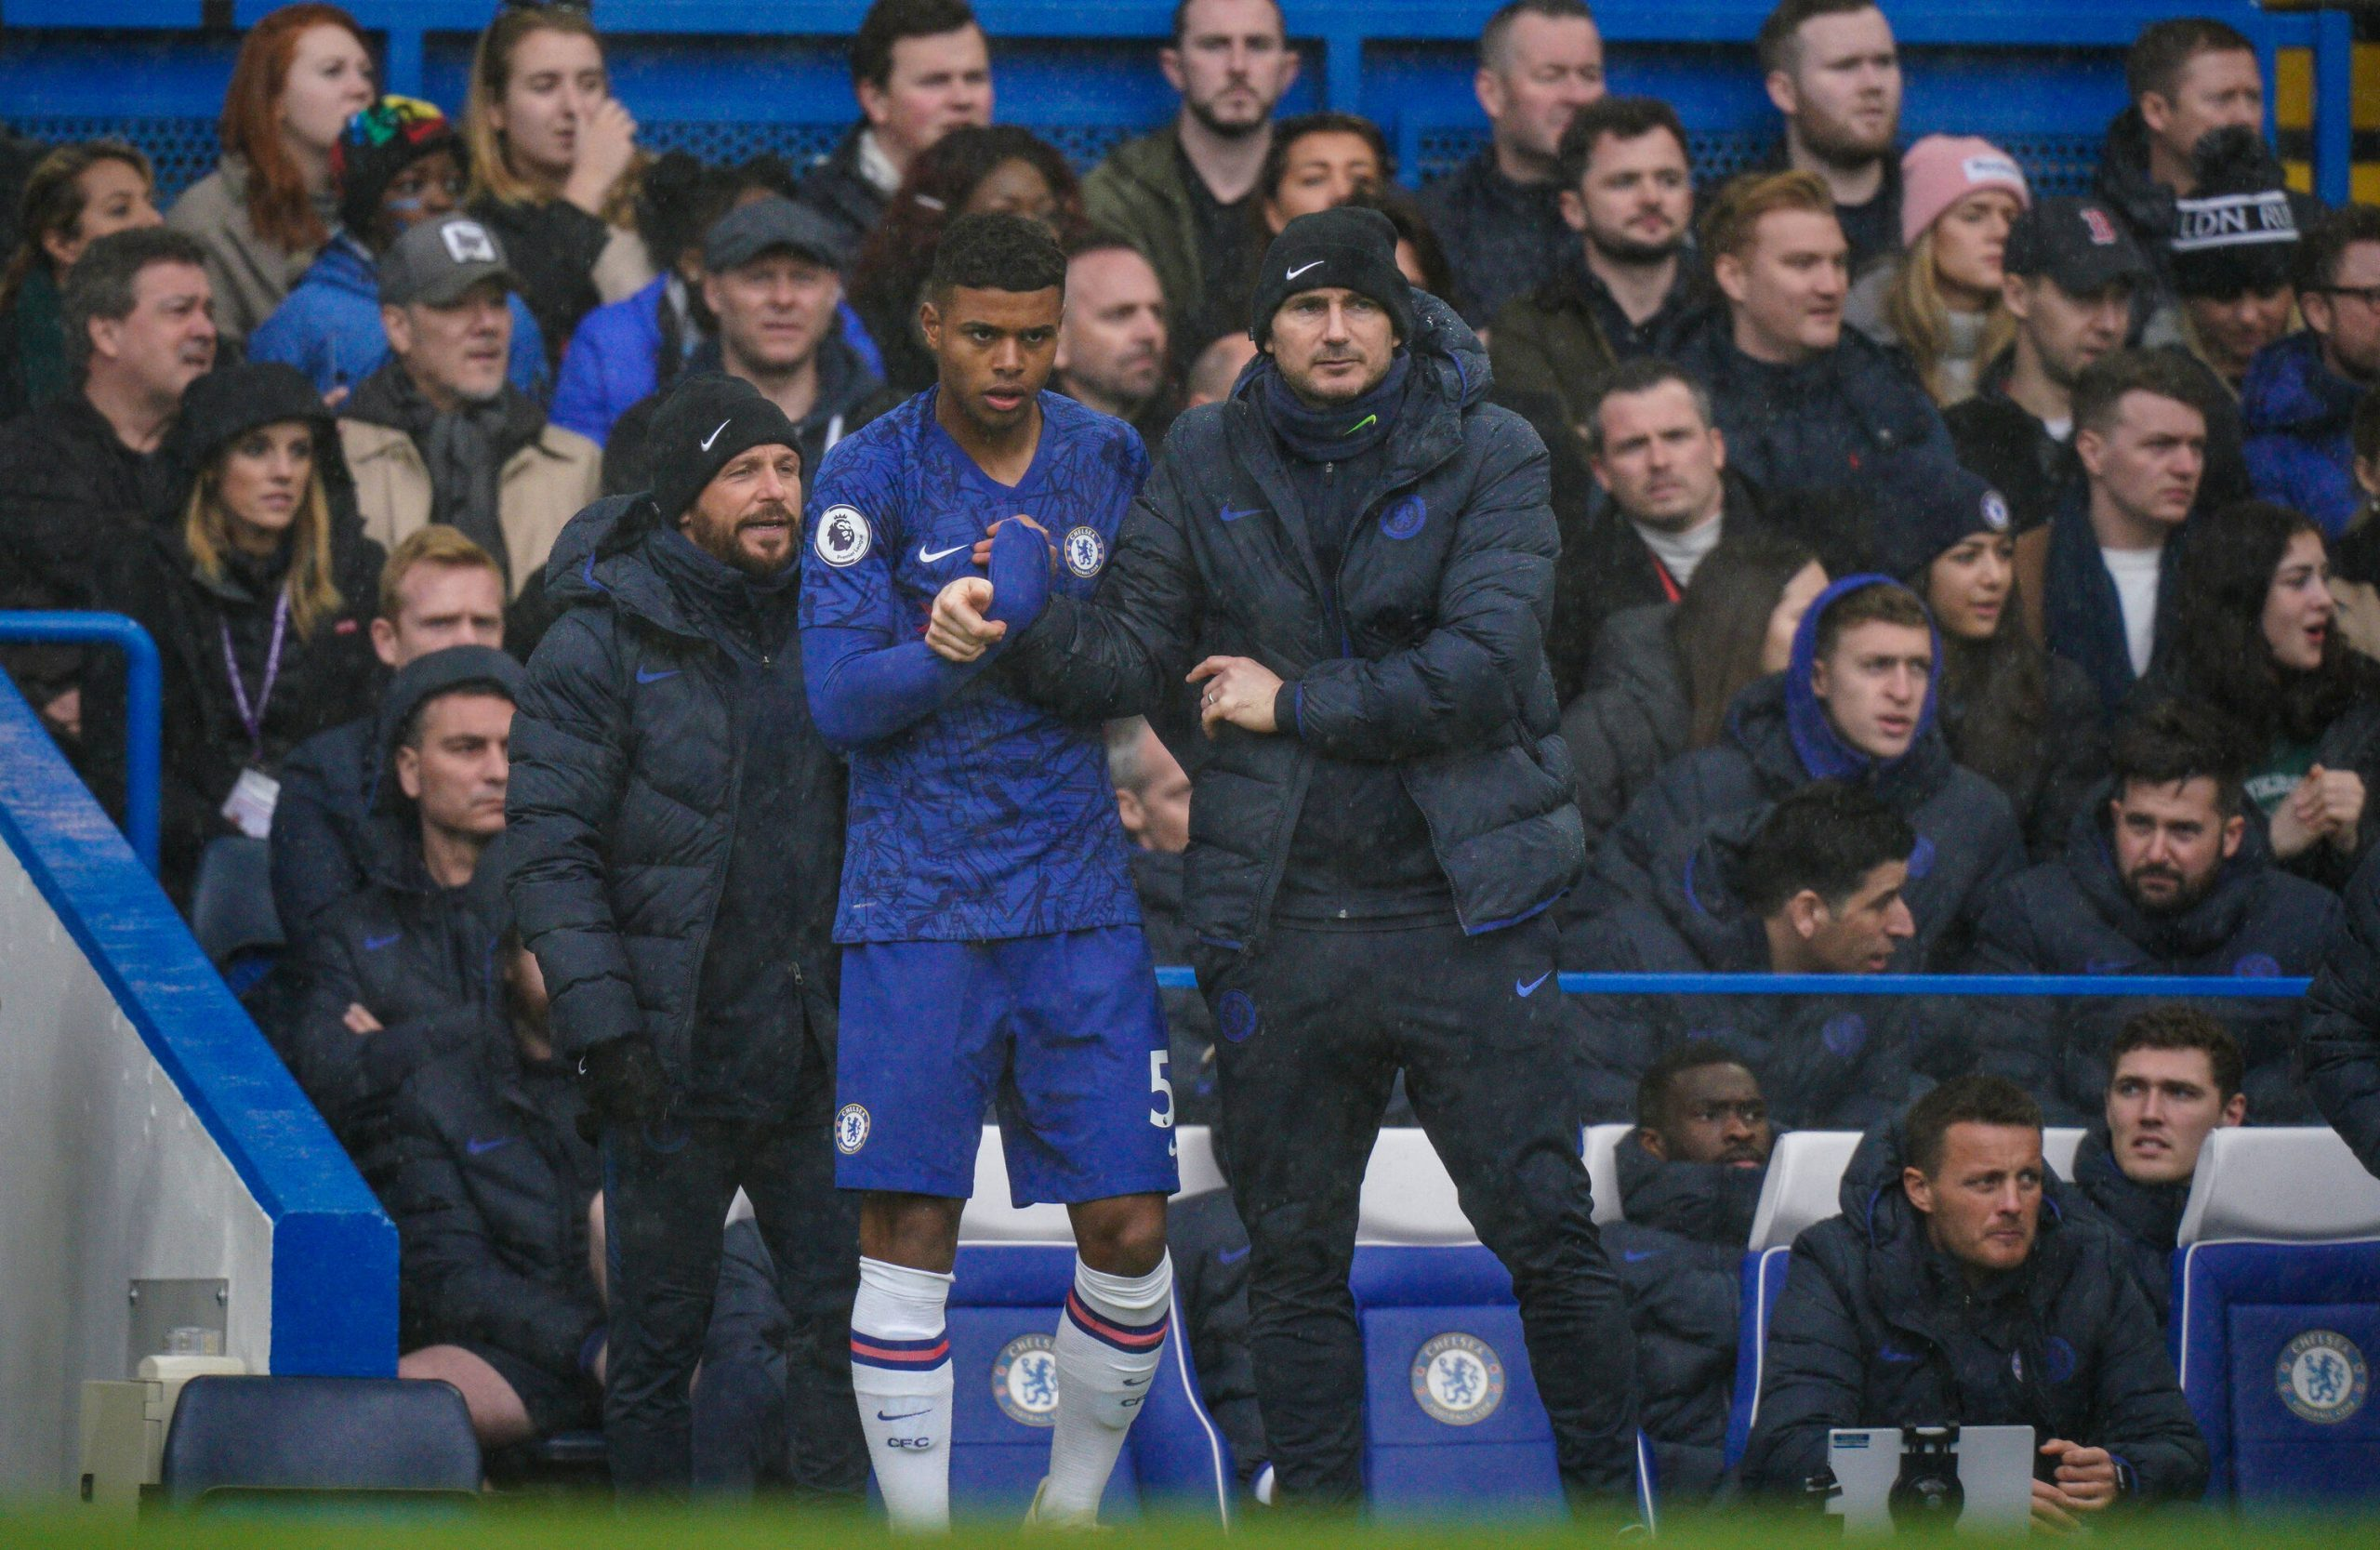 Anjorin Hails Lampard After Signing Chelsea Contract